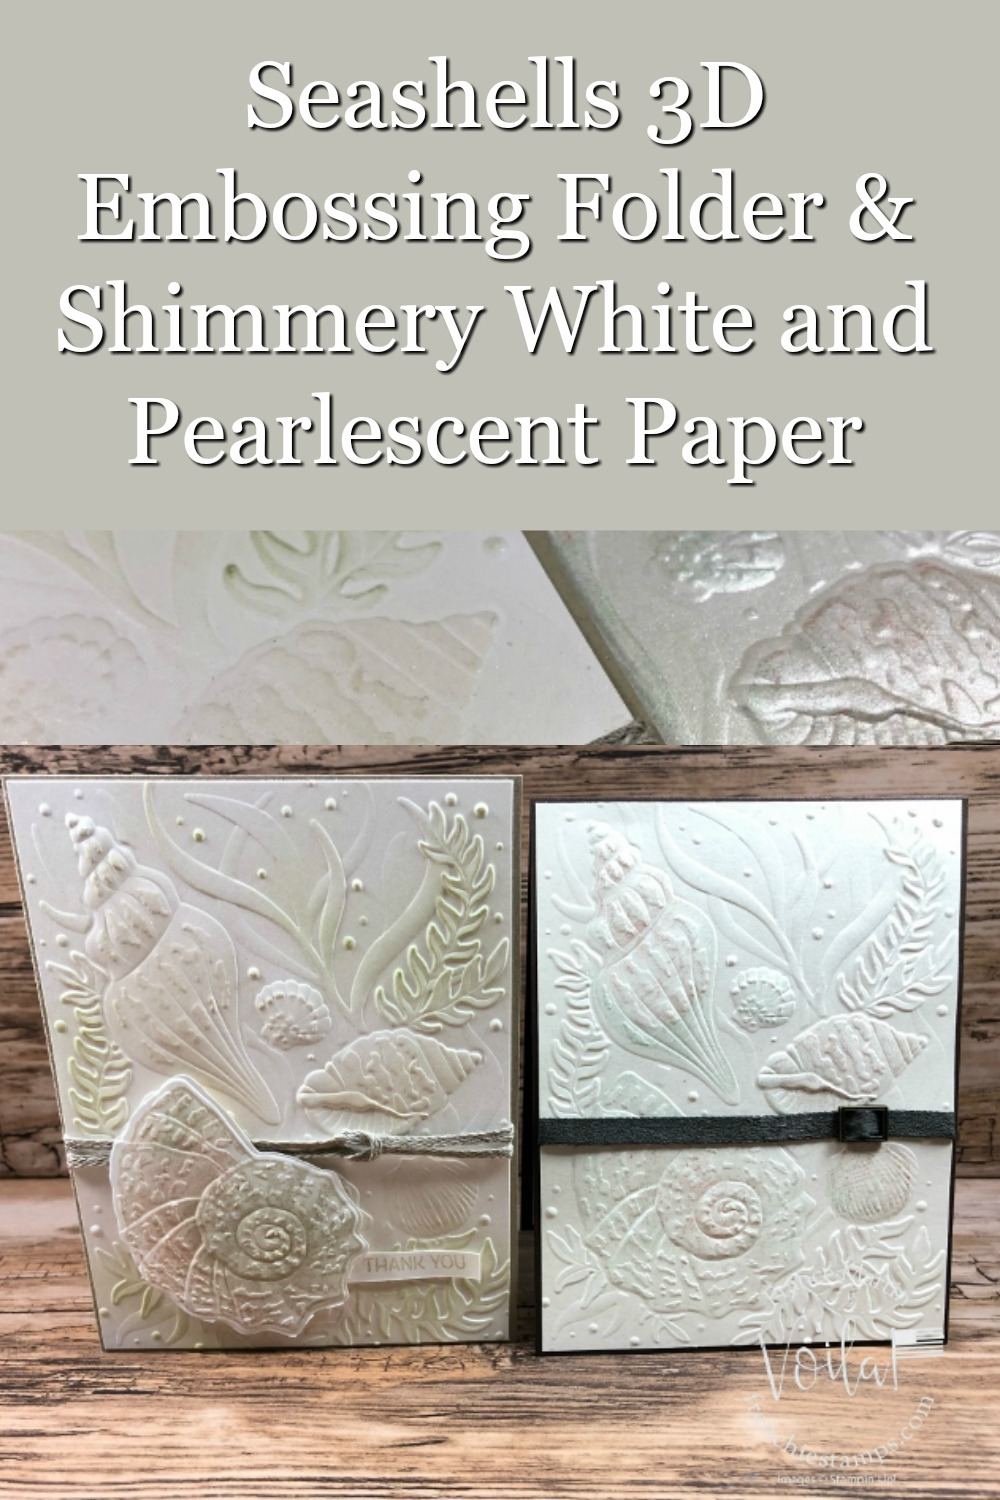 Pearlescent and Shimmery Paper with the Seashells Embossing Folder